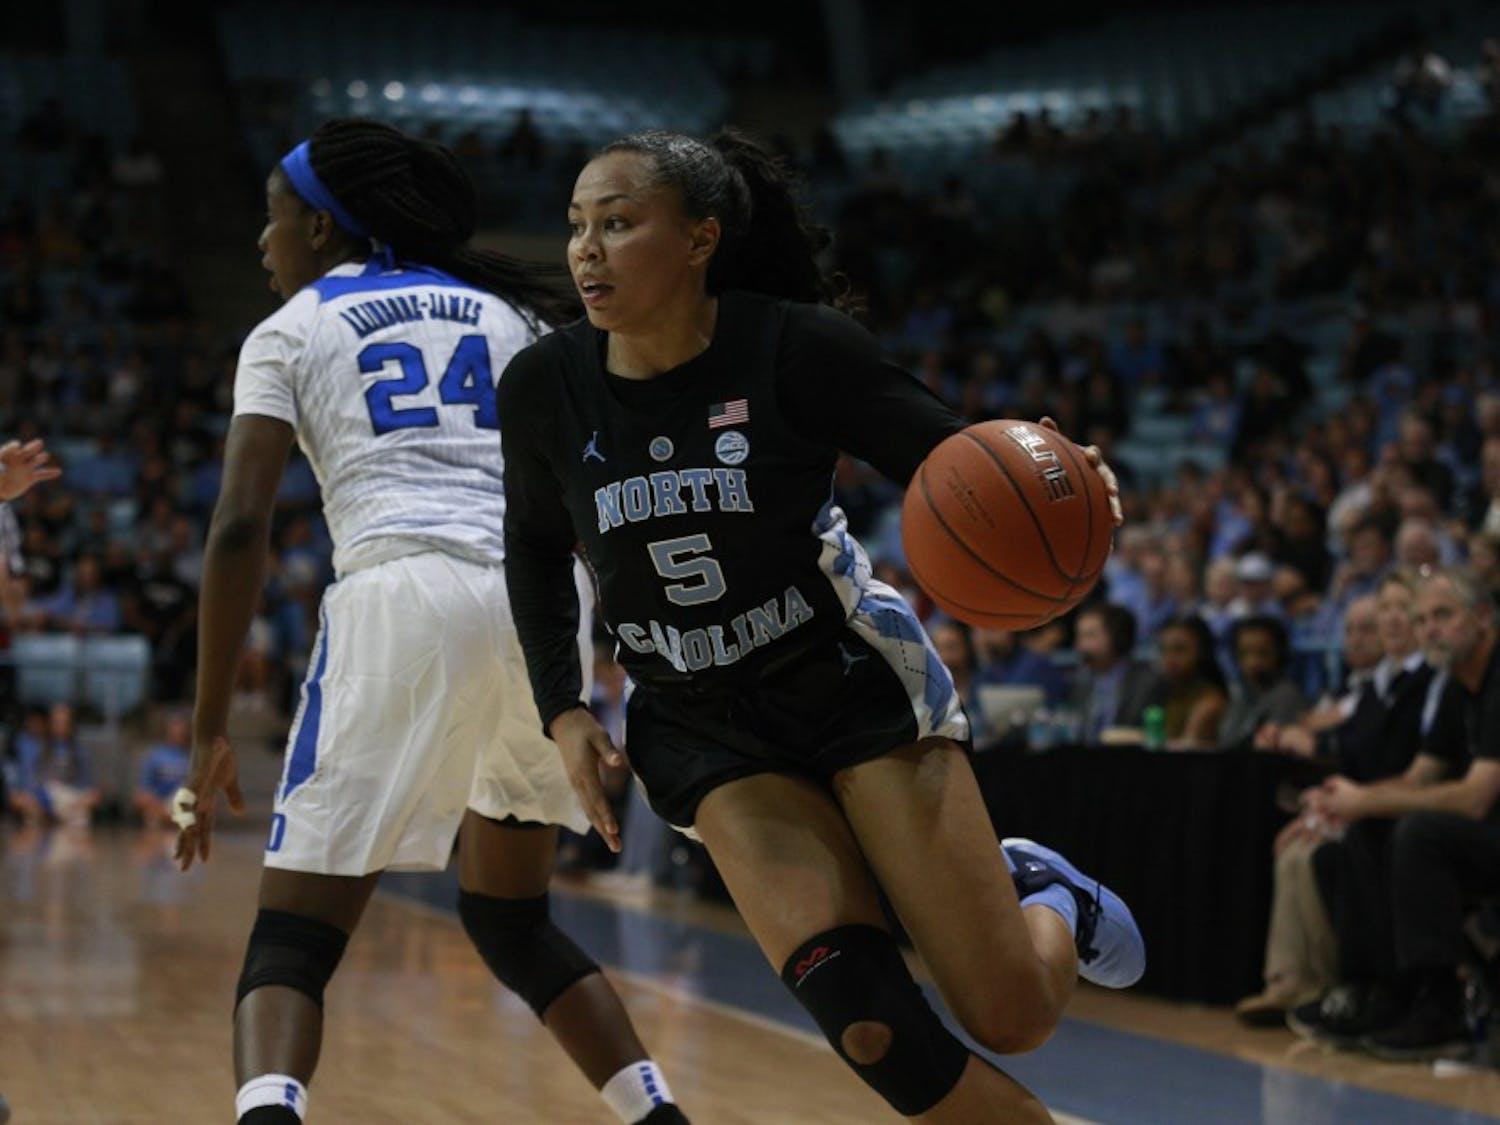 Redshirt junior Stephanie Watts (5) cuts across the court during a game against Duke in Carmichael Arena on Thursday, Feb. 7, 2019. UNC lost 69 to 85.